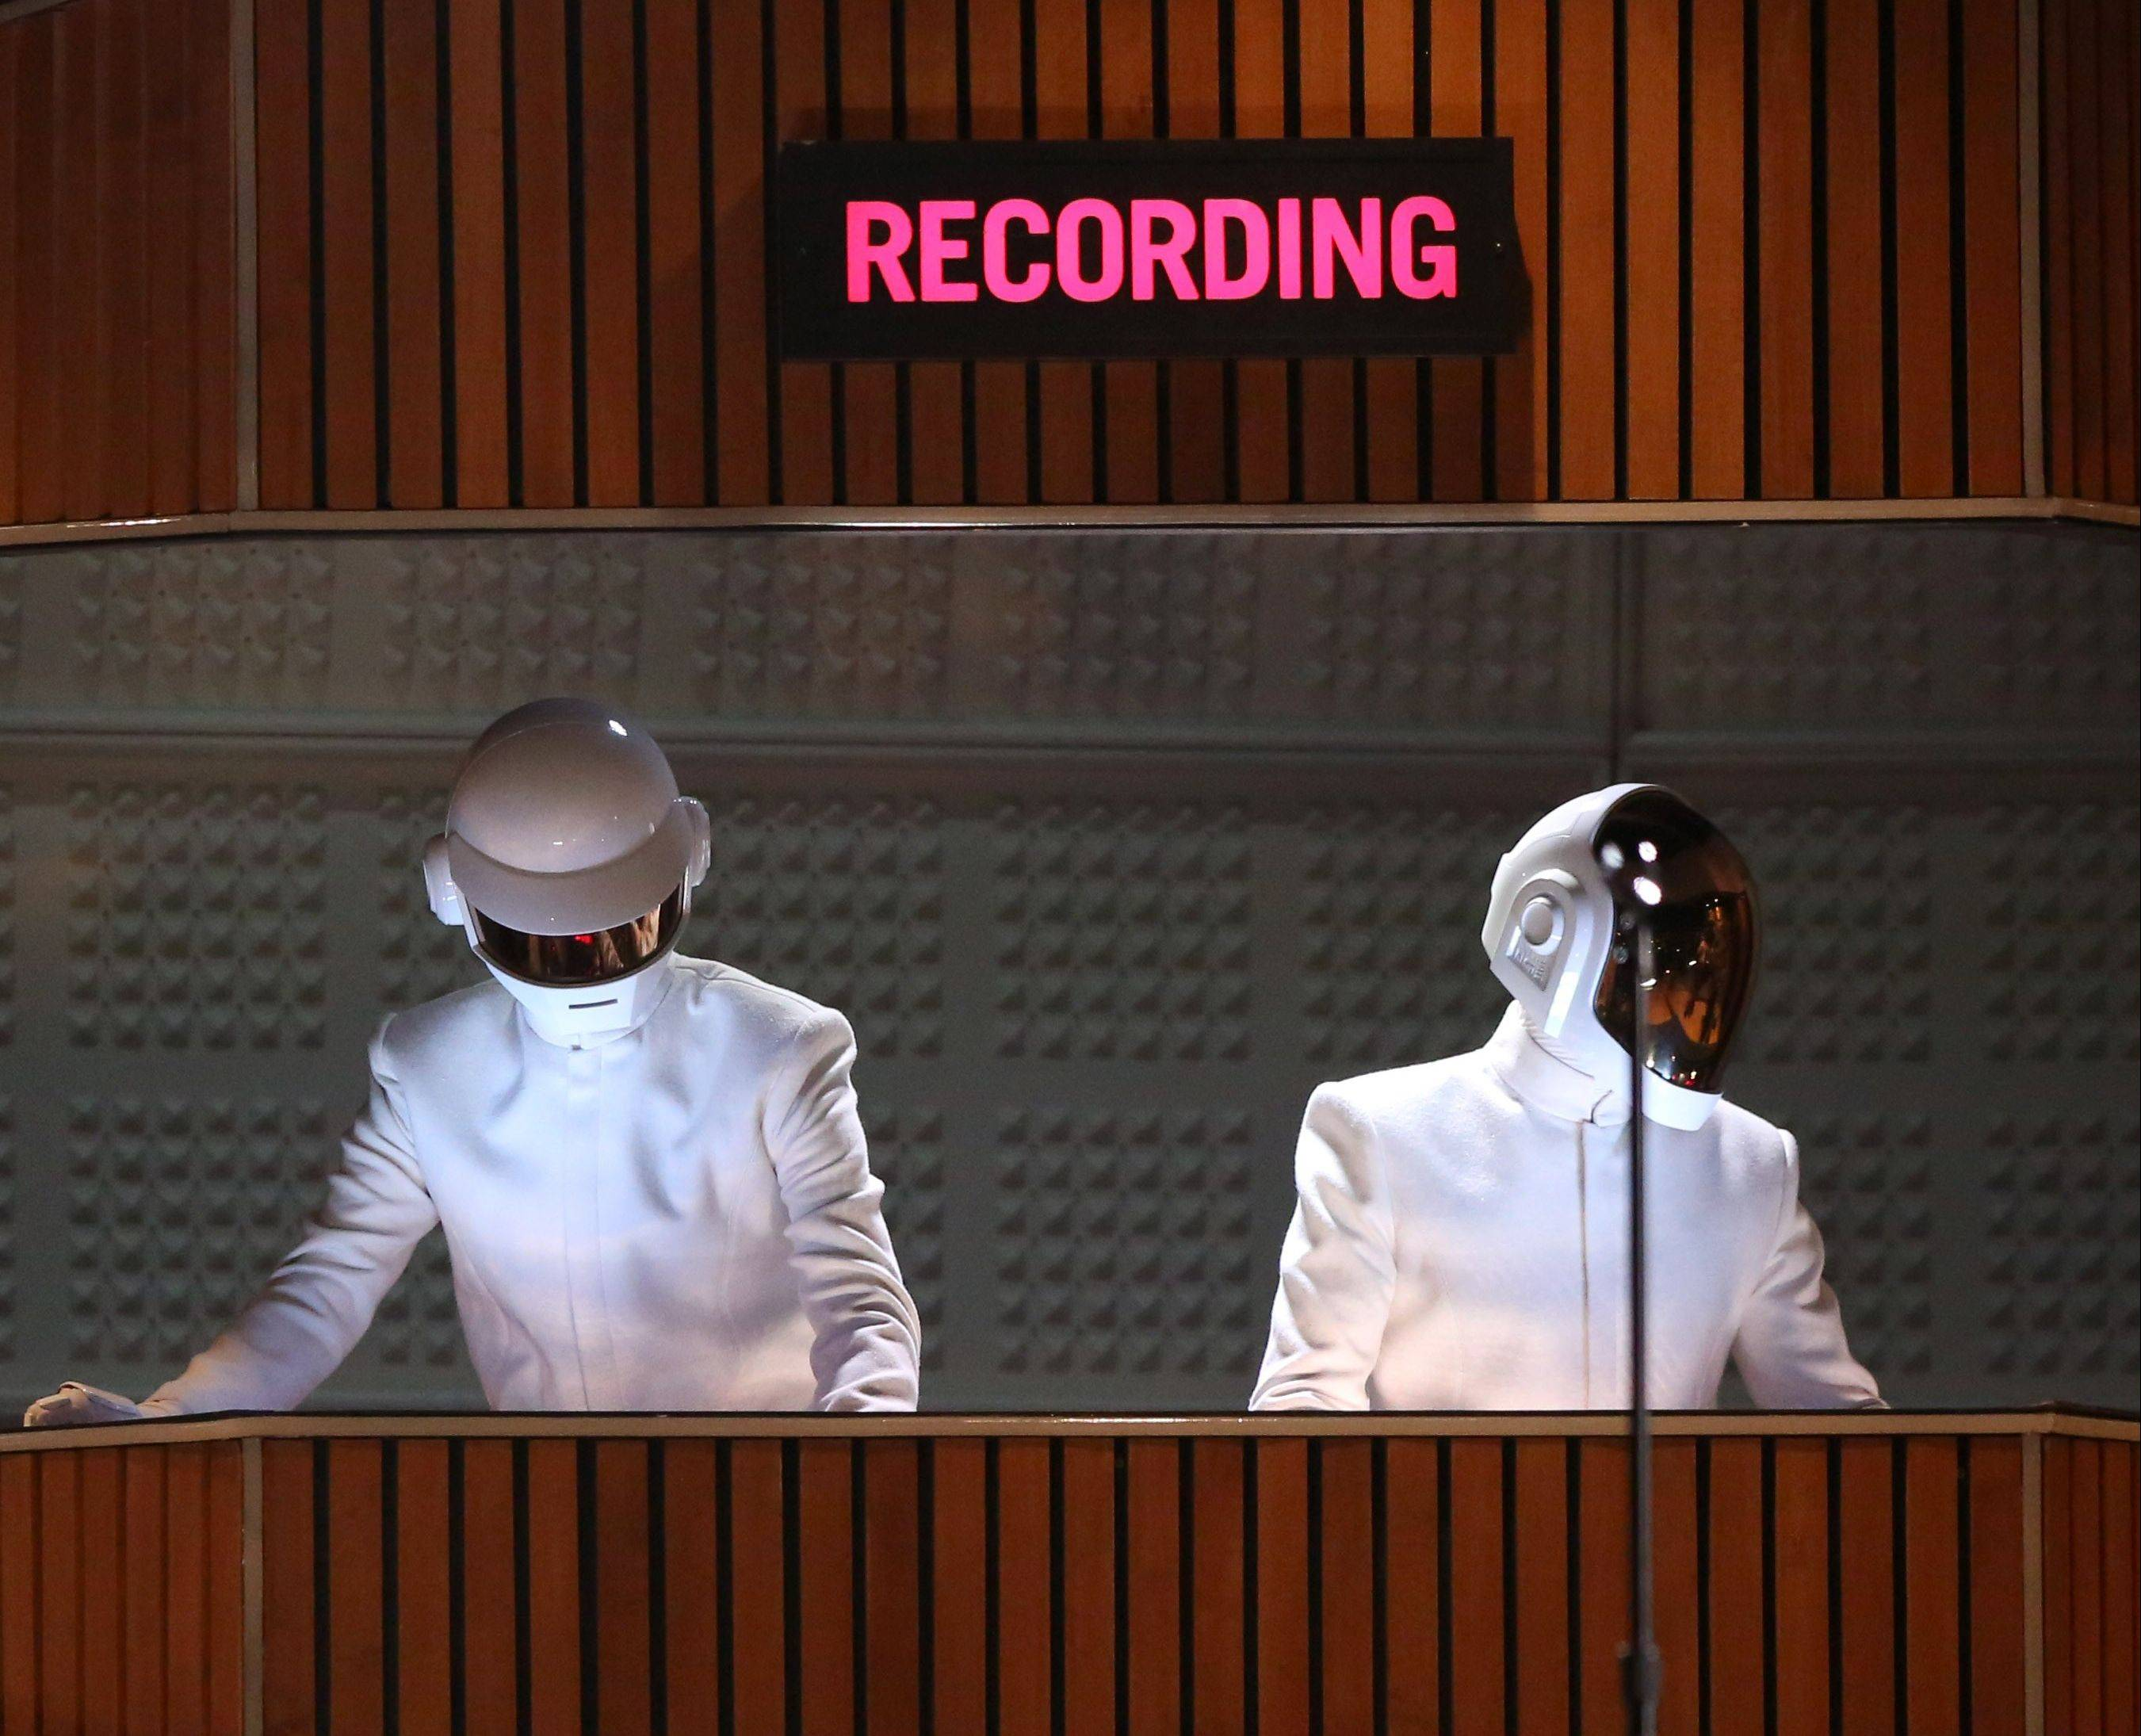 Thomas Bangalter, left, and Guy-Manuel de Homem-Christo of Daft Punk perform at the 56th annual Grammy Awards at Staples Center on Sunday in Los Angeles. The duo would go on to win Grammys for album of the year and record of the year.